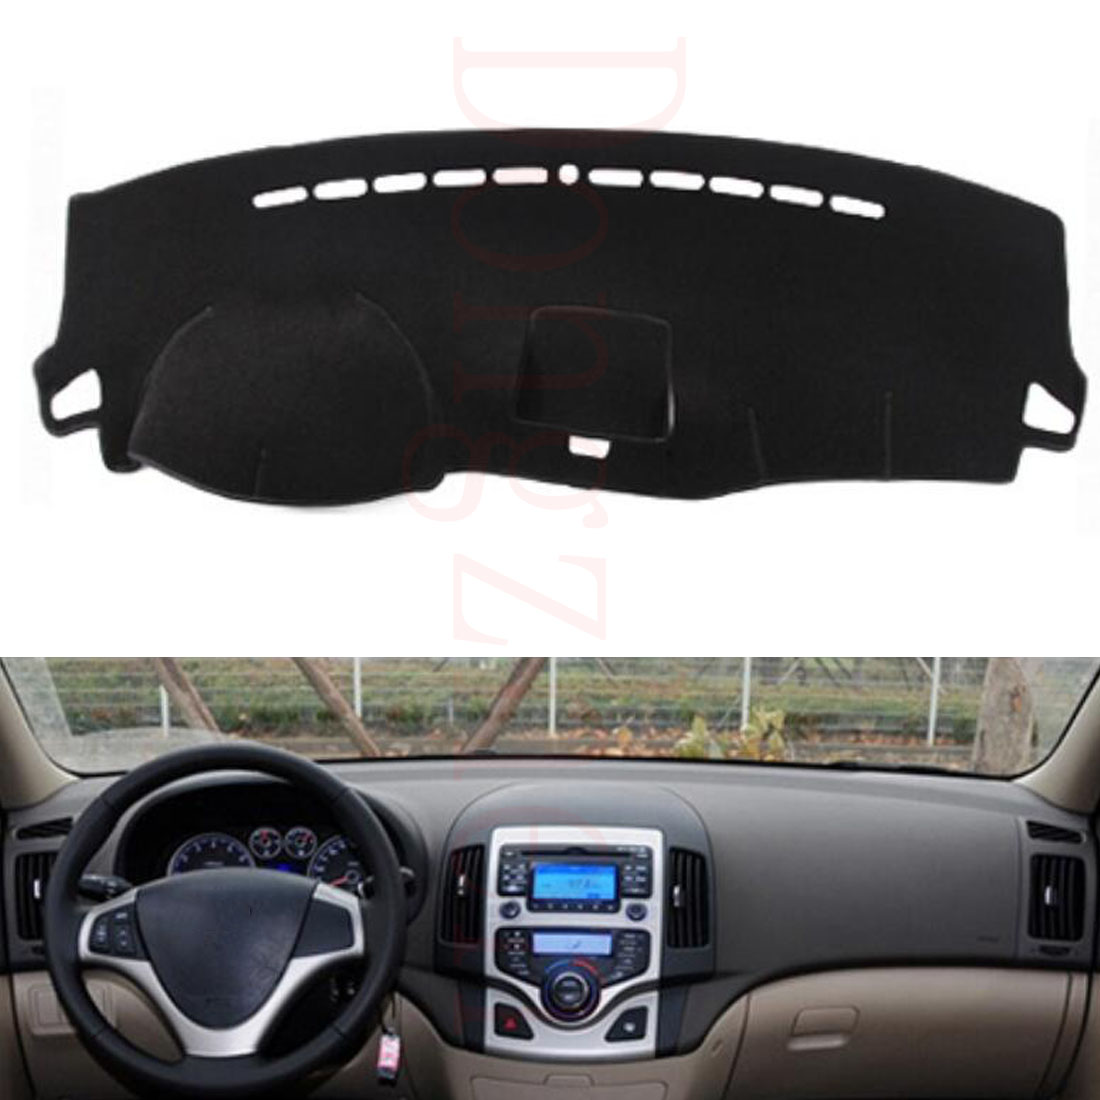 Dongzhen Fit For HYUNDAI I30 2009 To 2016 Car Dashboard Cover Avoid Light Pad Instrument Platform Dash Board Cover